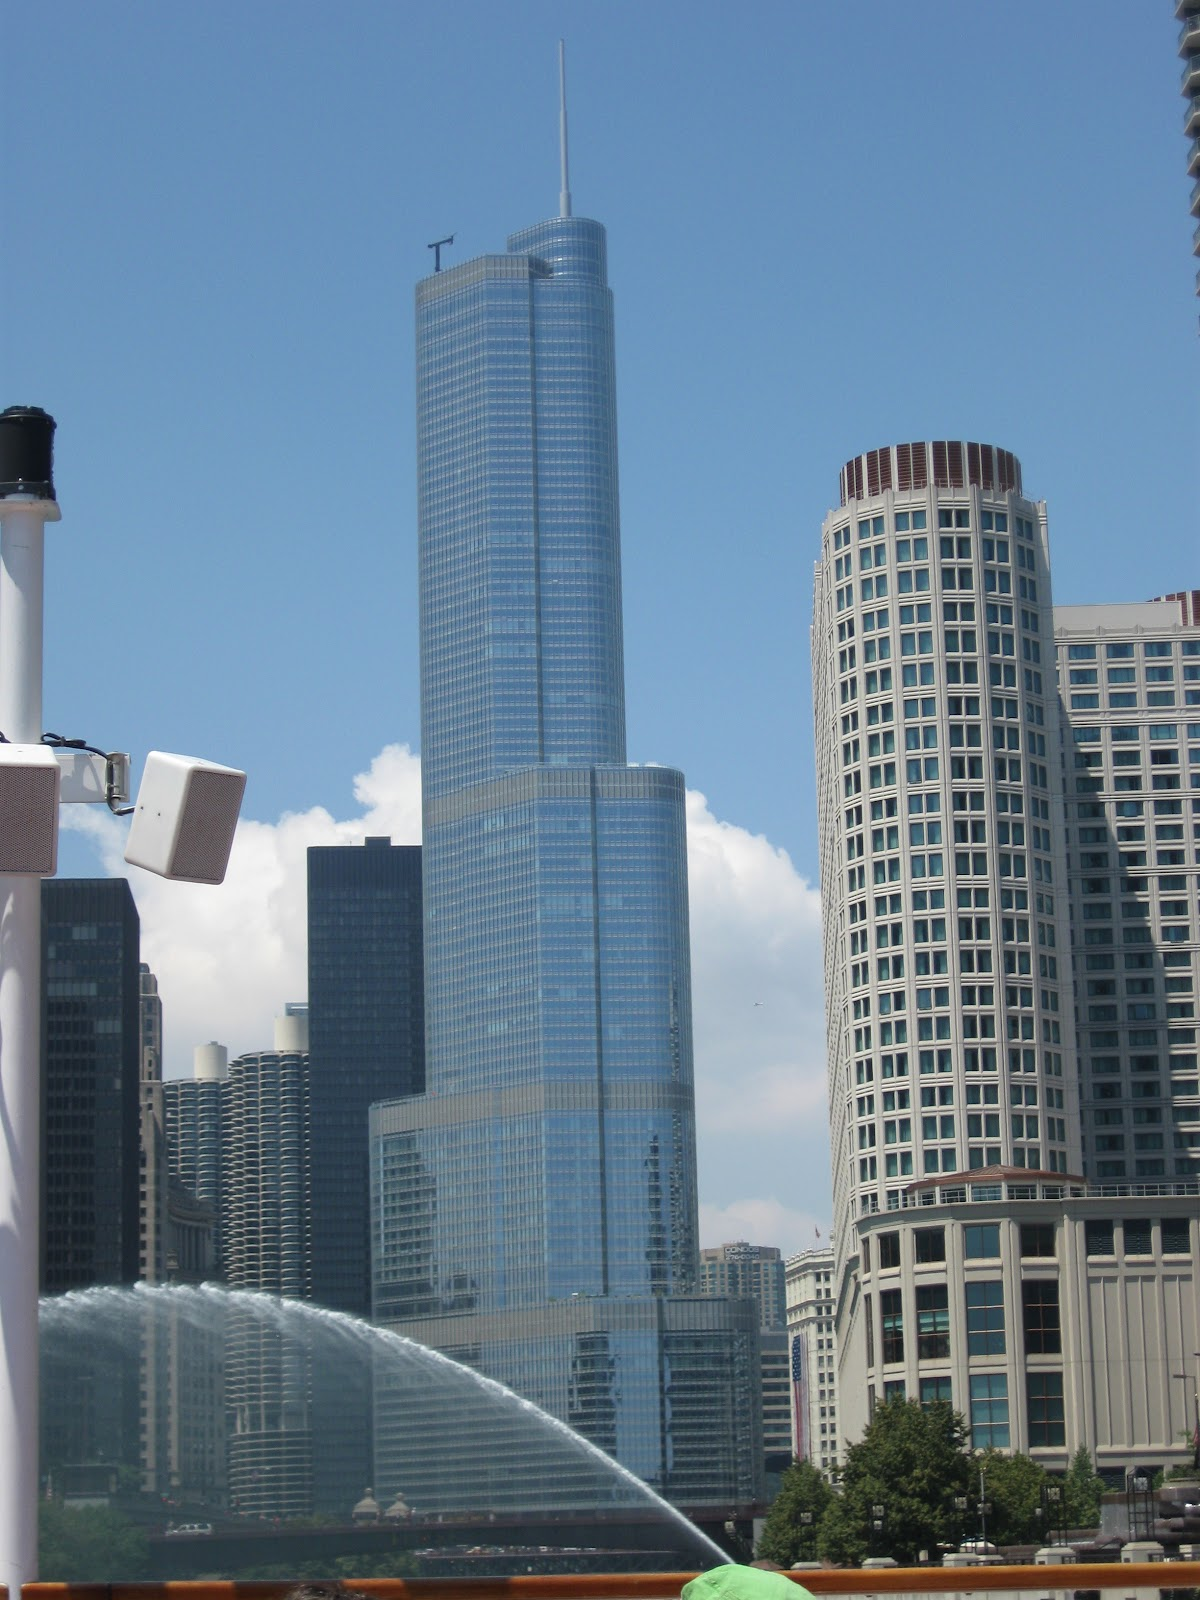 Hot Babes Single 10 Tallest Buildings In The United